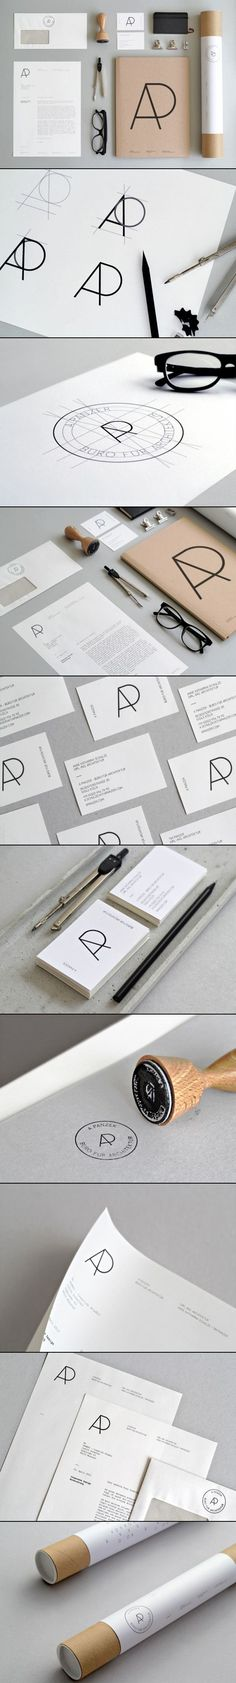 Creative Logo, Ap, Identity, and Branding image ideas & inspiration on Designspiration Corporate Design, Brand Identity Design, Graphic Design Typography, Logo Rond, Design Corporativo, Paper Design, Design Ideas, Self Branding, Identity Branding